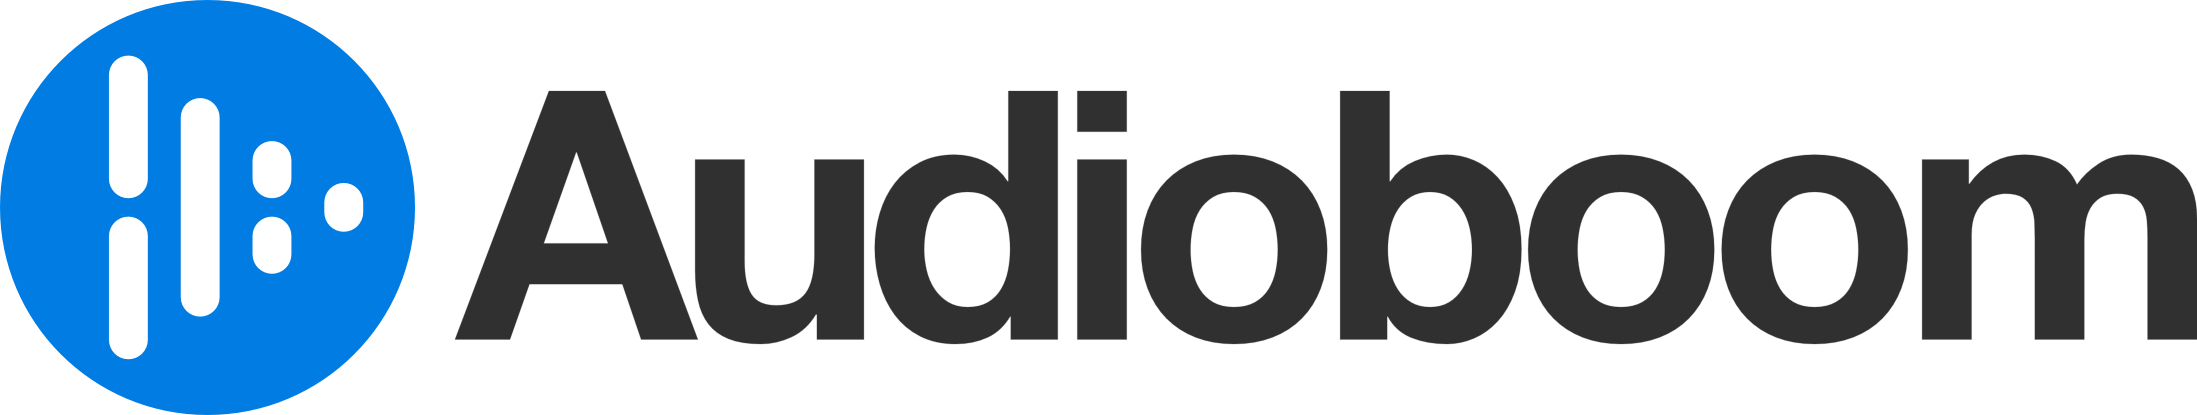 AUDIOBOOM GROUP PLC Logo